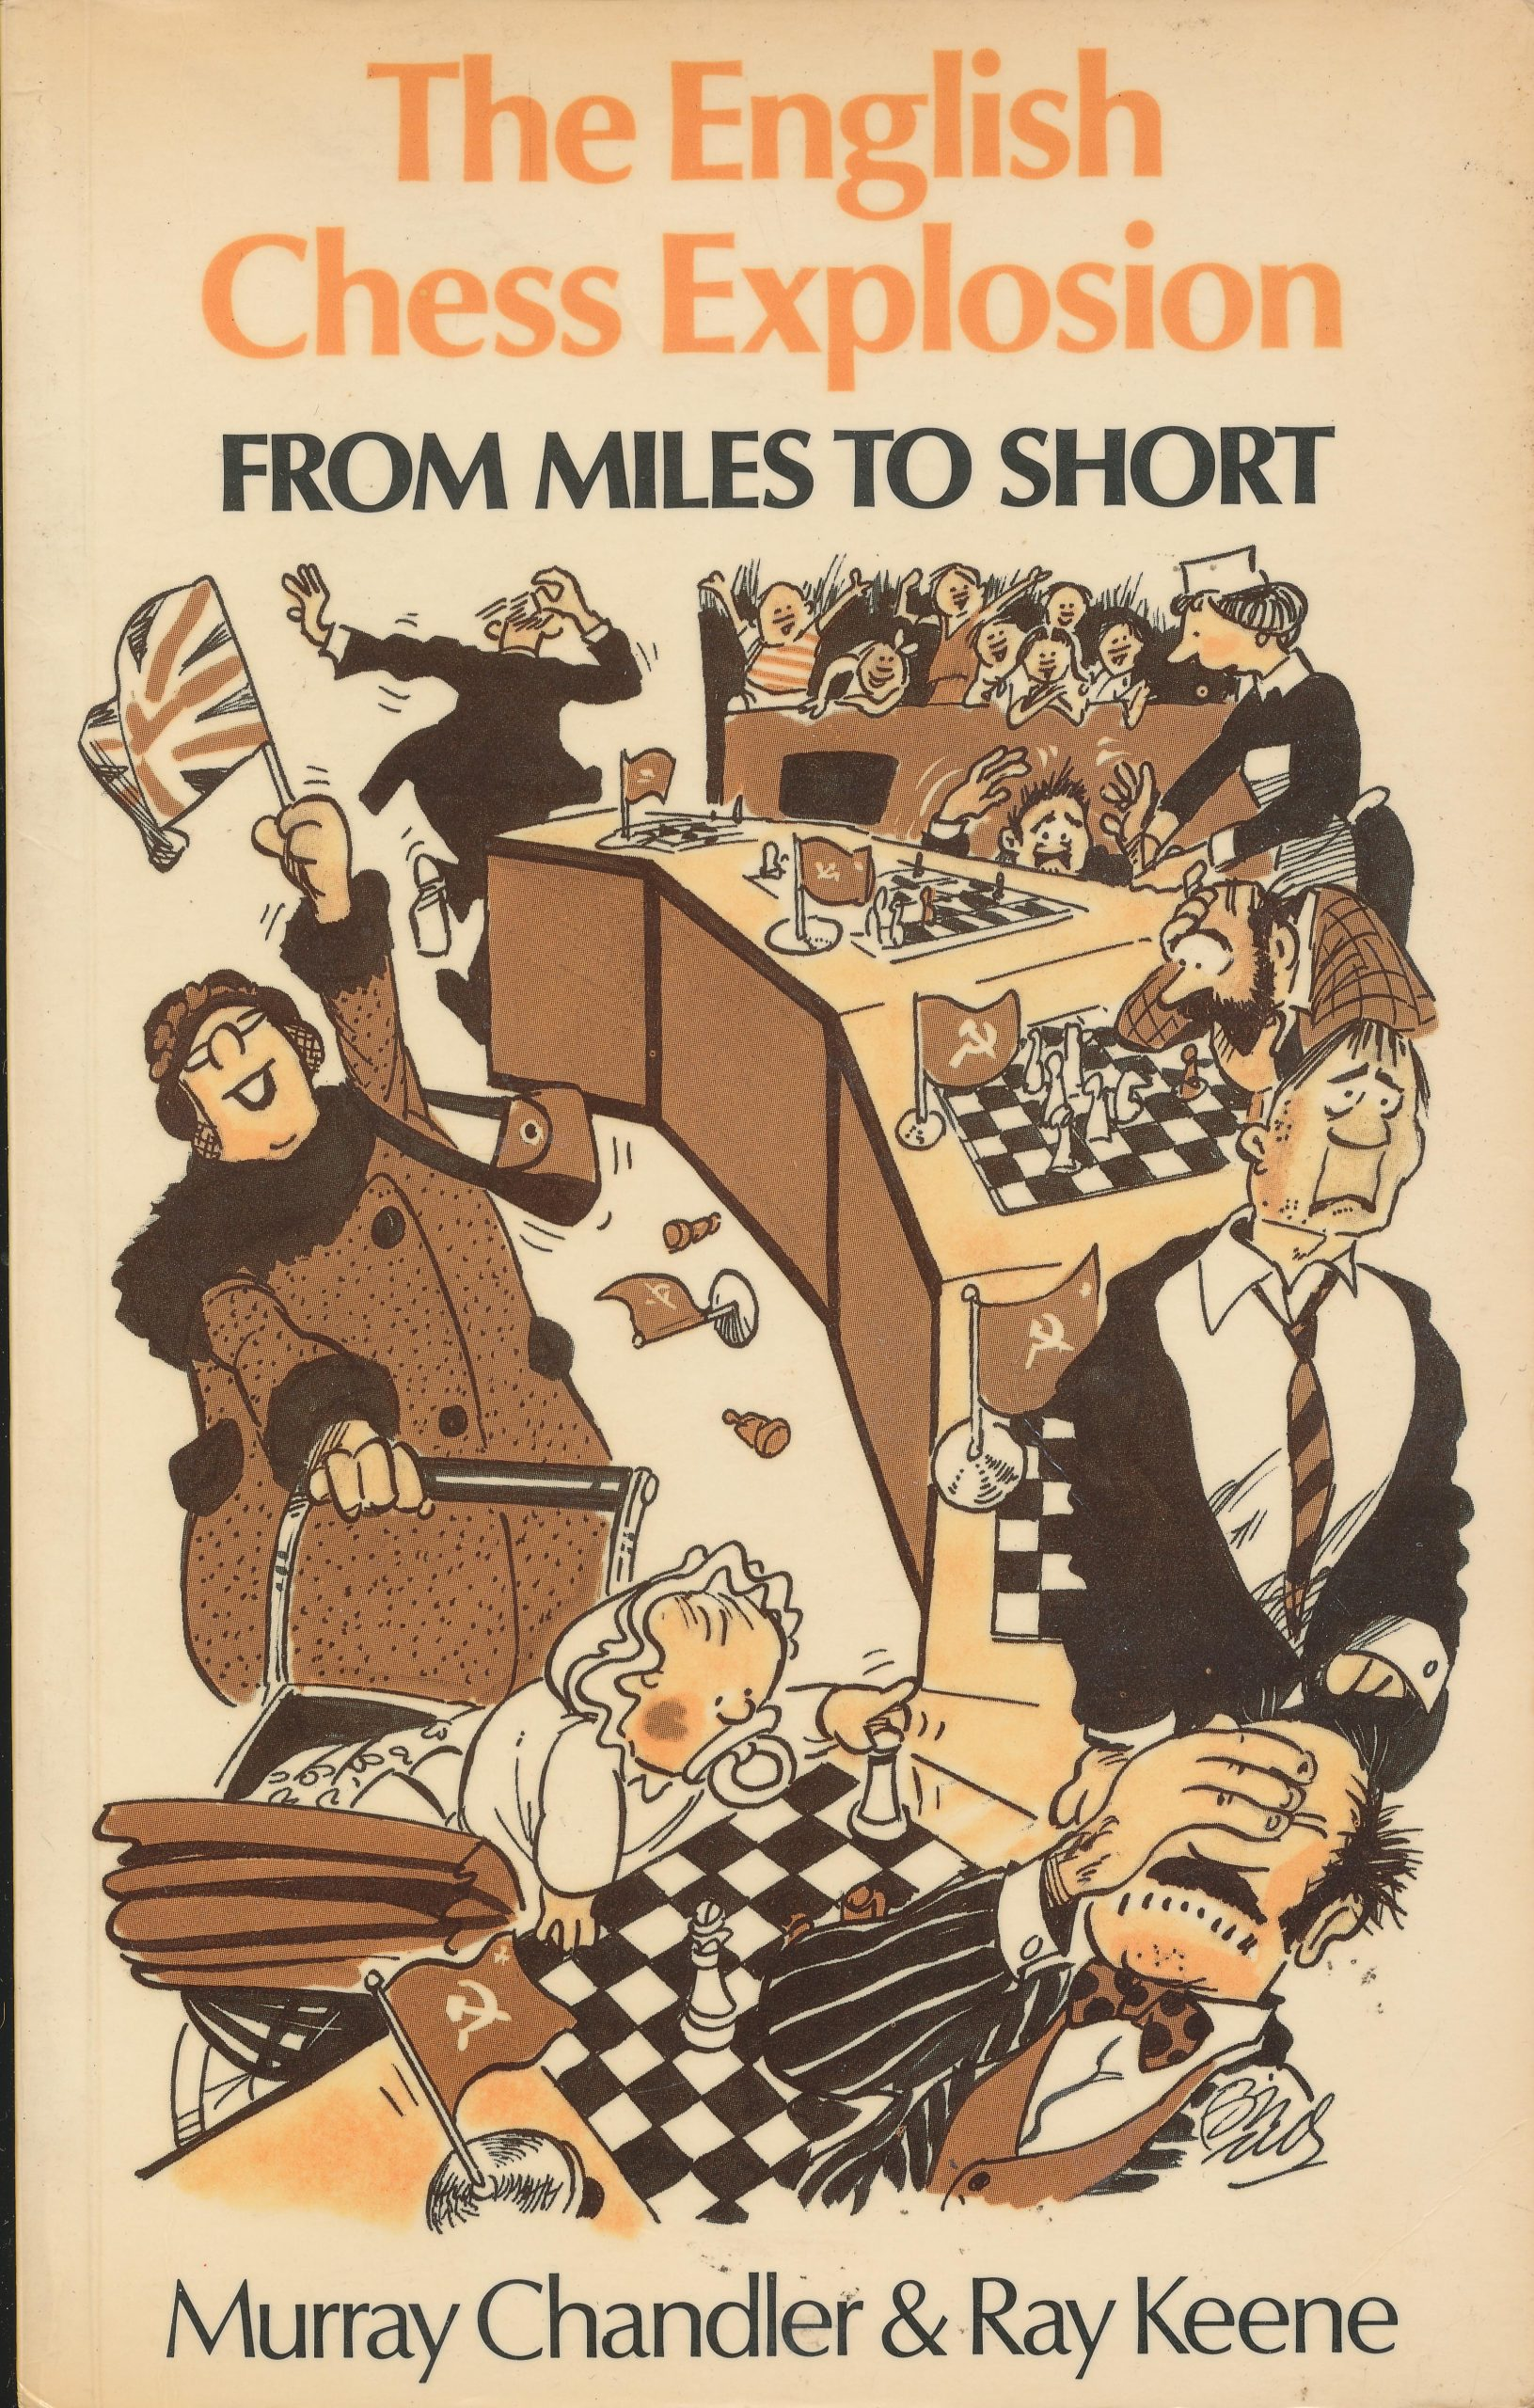 The English Chess Explosion (from Miles to Short), Murray Chandler & Ray Keene, Batsford, 1981, ISBN 0 7134 4009 0